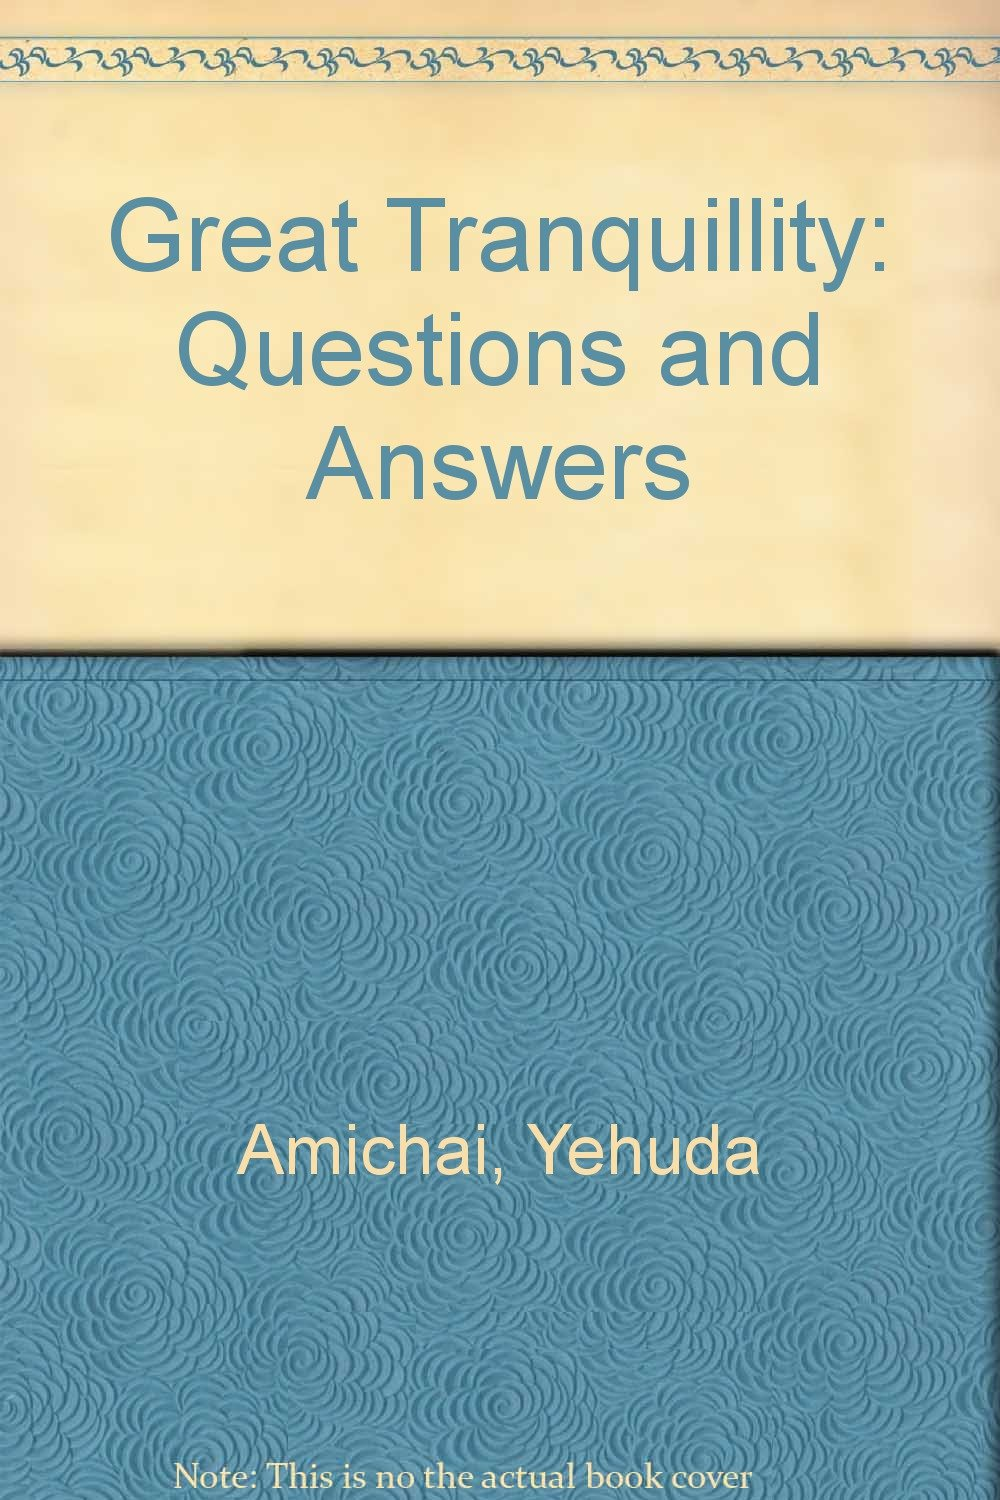 Great Tranquillity: Questions and Answers